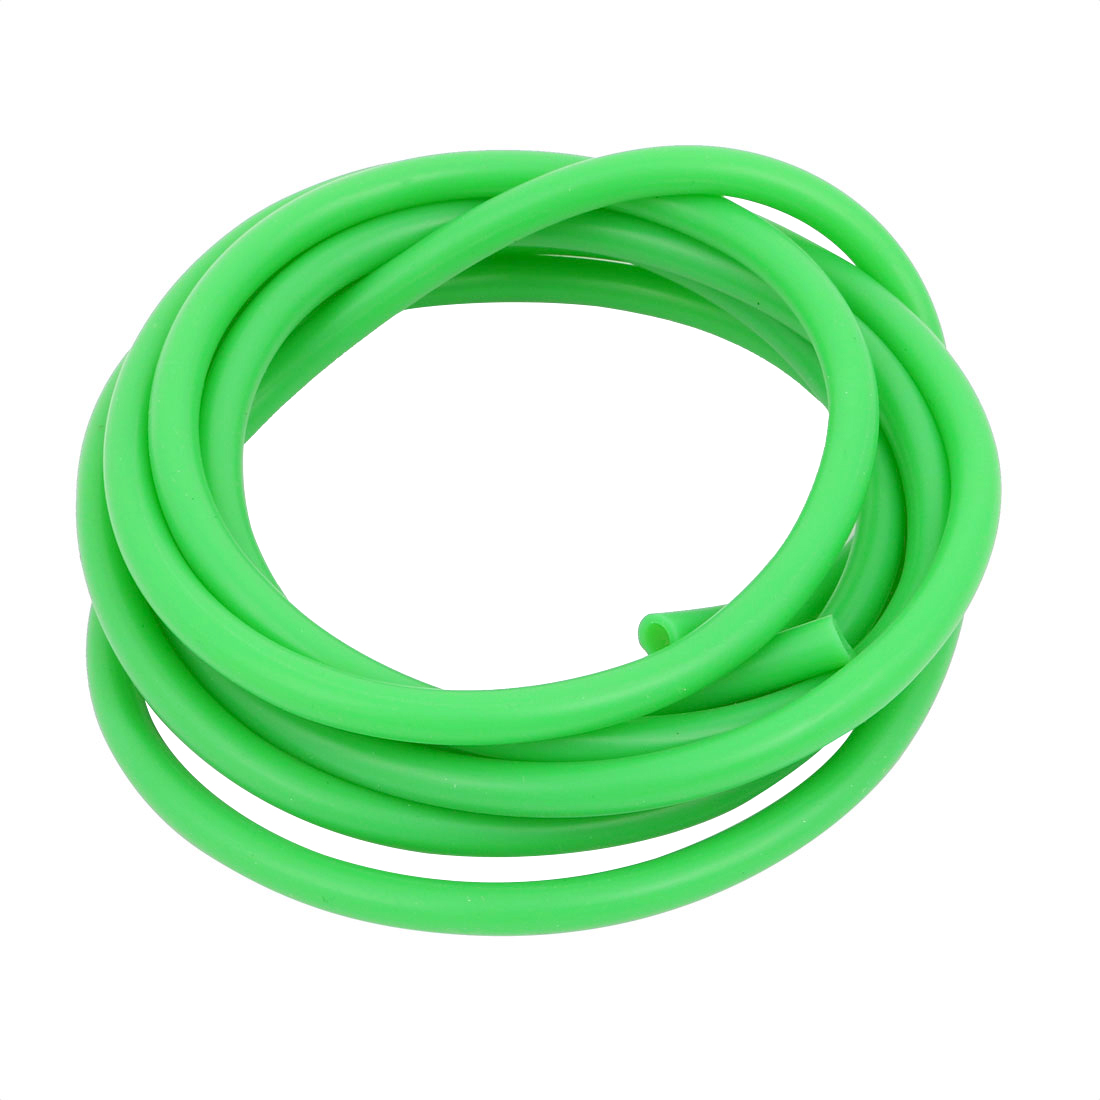 5mm x 7mm High Temp Resistant Silicone Rubber Tube Hose Pipe Green 2 Meters Long